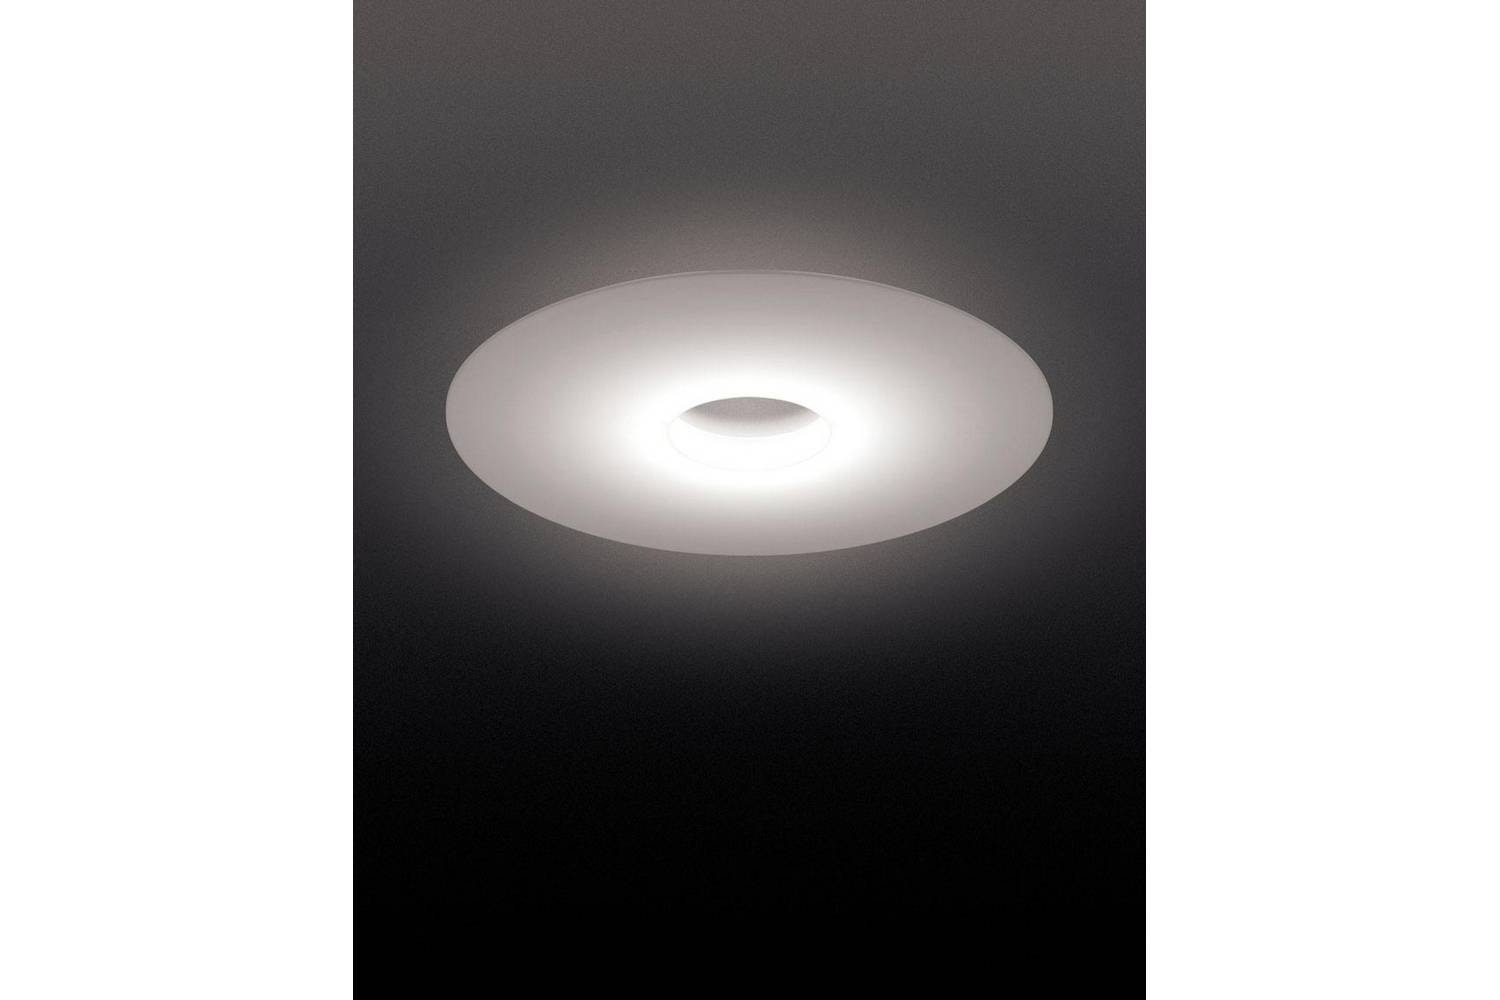 Ellepi Ceiling/Wall Lamp by Alessandra Matilde for Foscarini